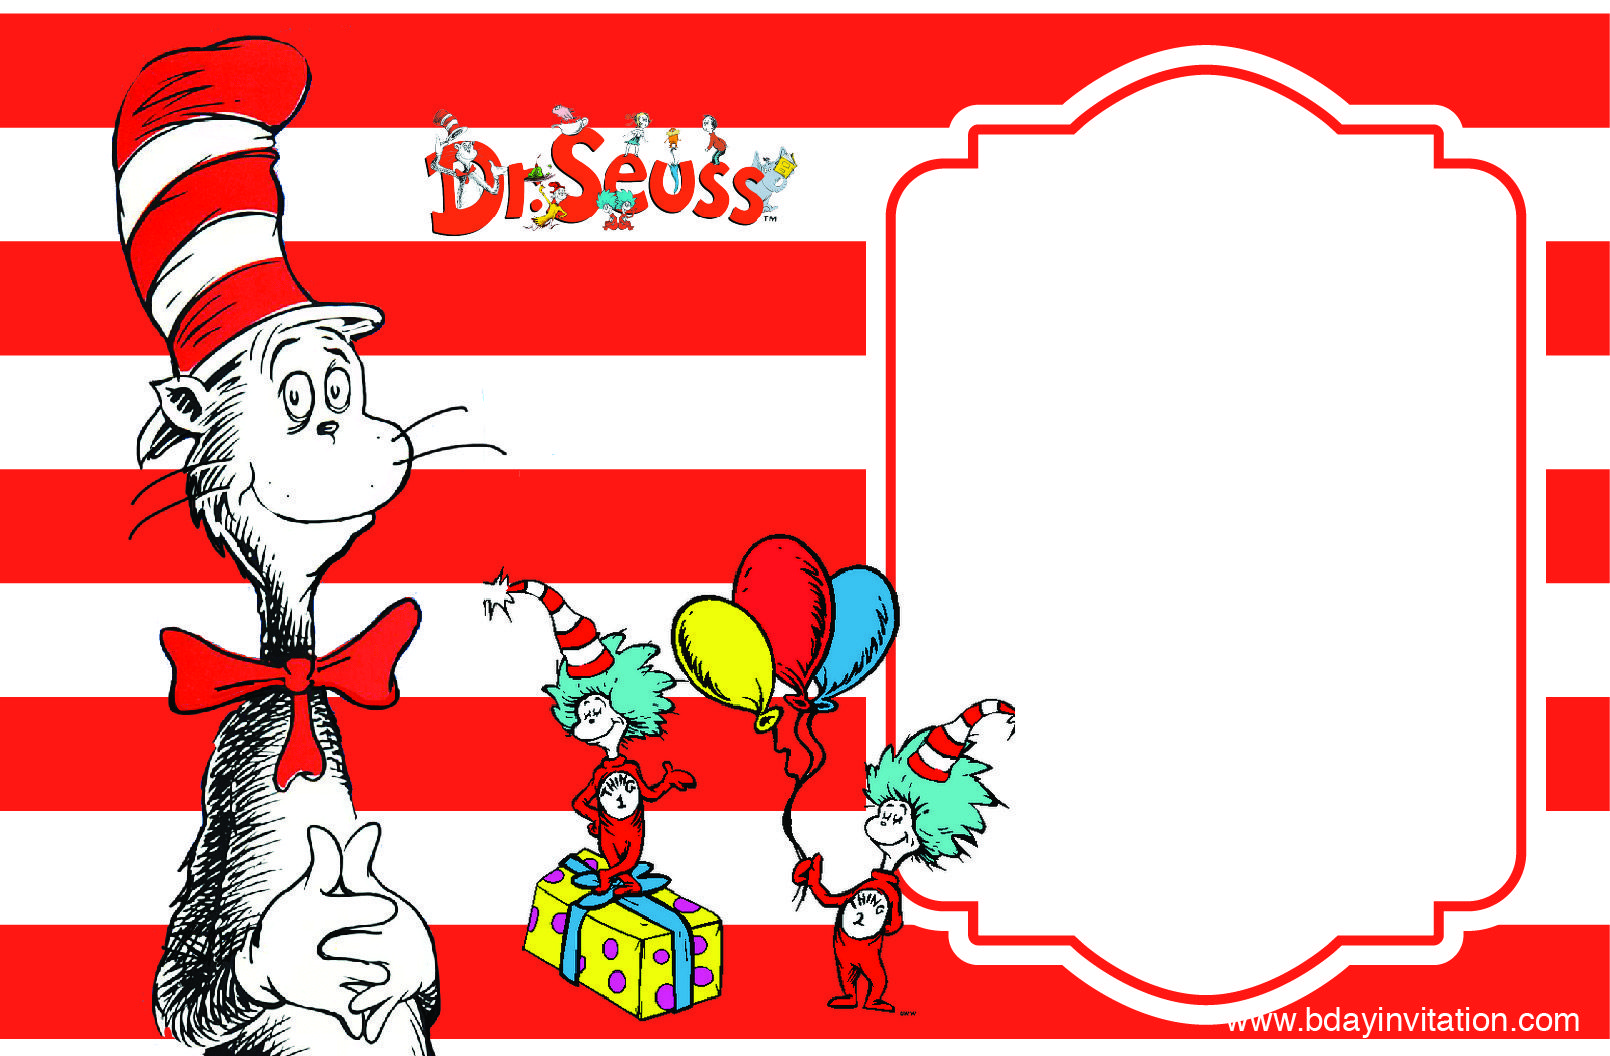 Dr Seuss Birthday Invitations Templates | Nice Free Printable Dr Seuss Birthday Invitation Template Free